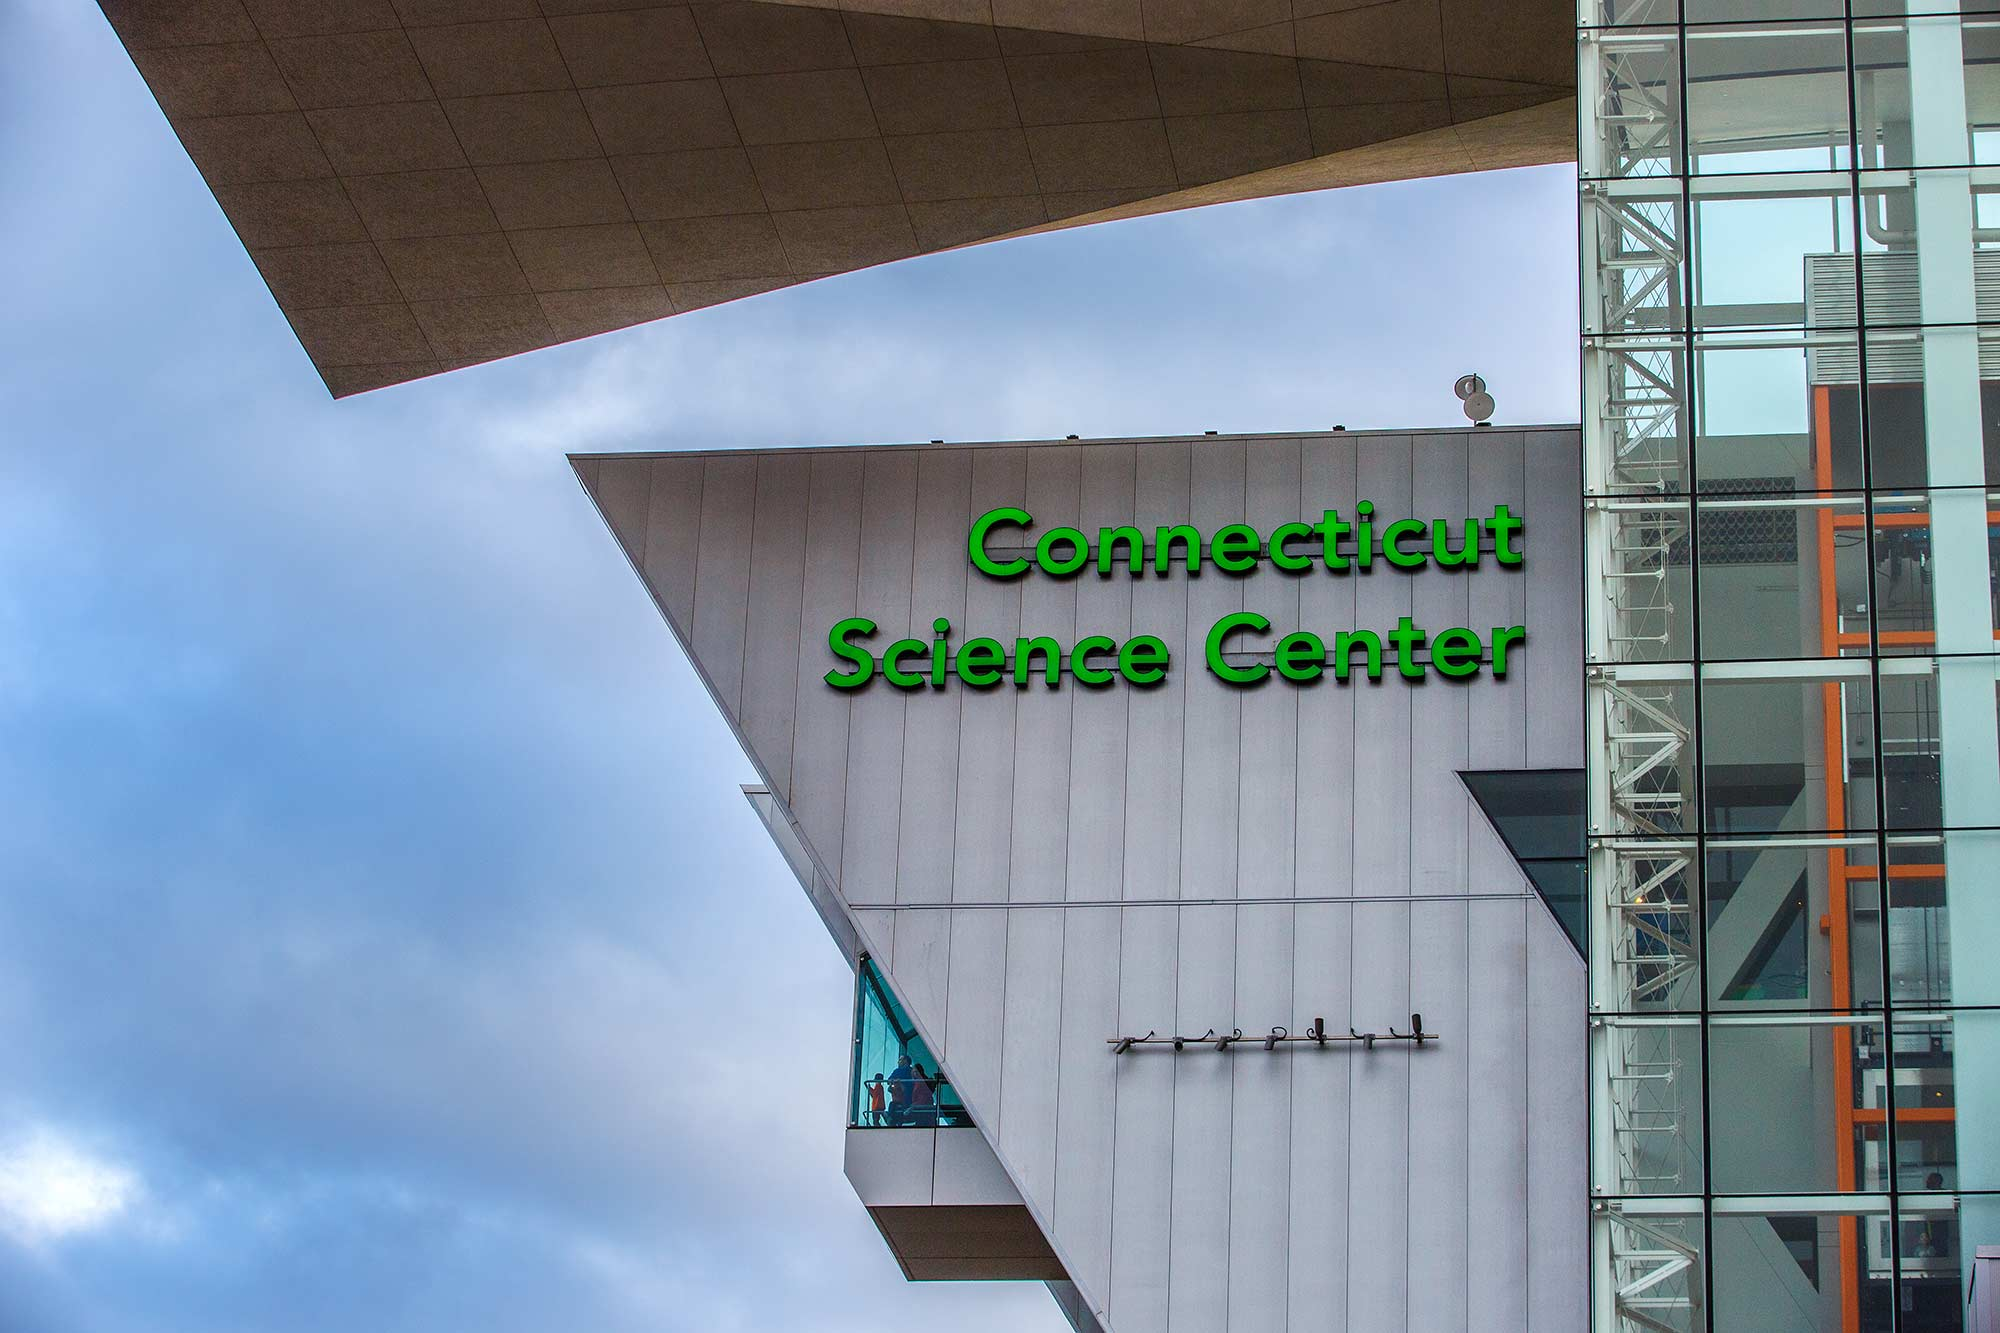 Connecticut Science Center, Hartford, CT - 1/16